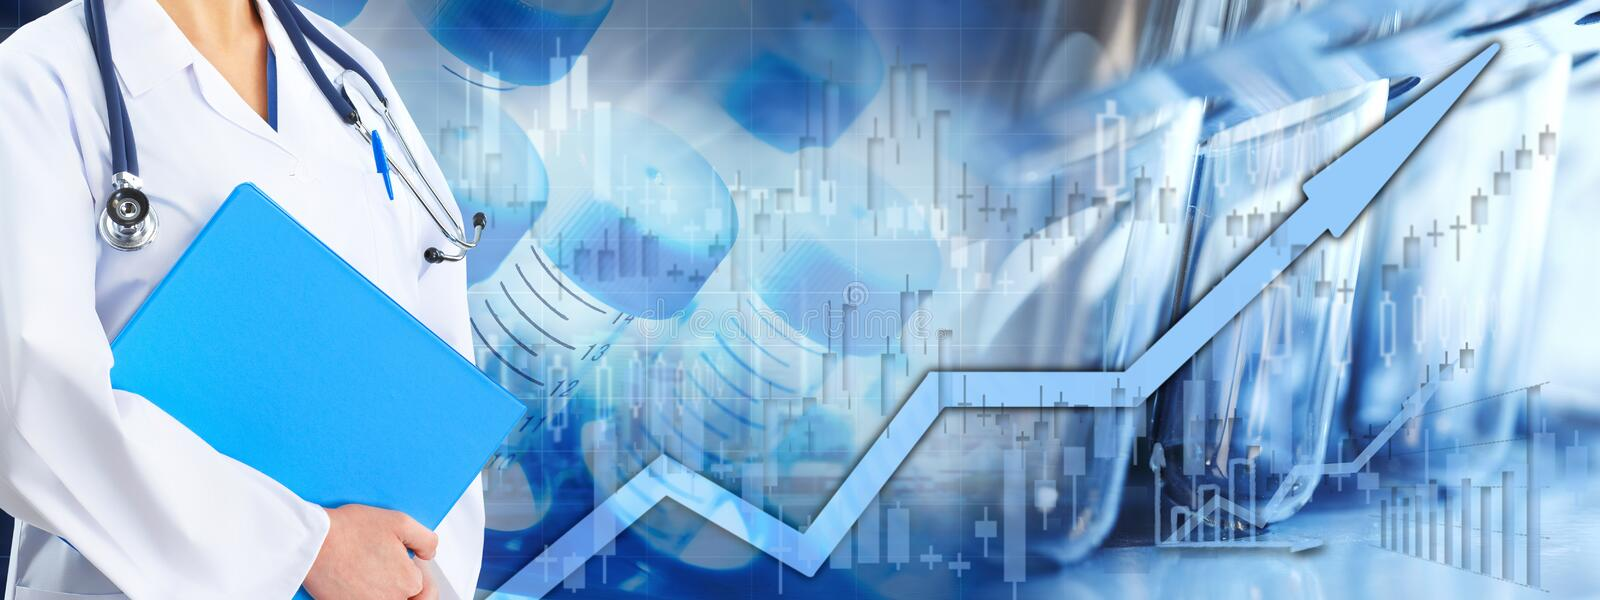 Health care stock market background. Healthcare medical biopharmaceutical investing stock chart background stock photo